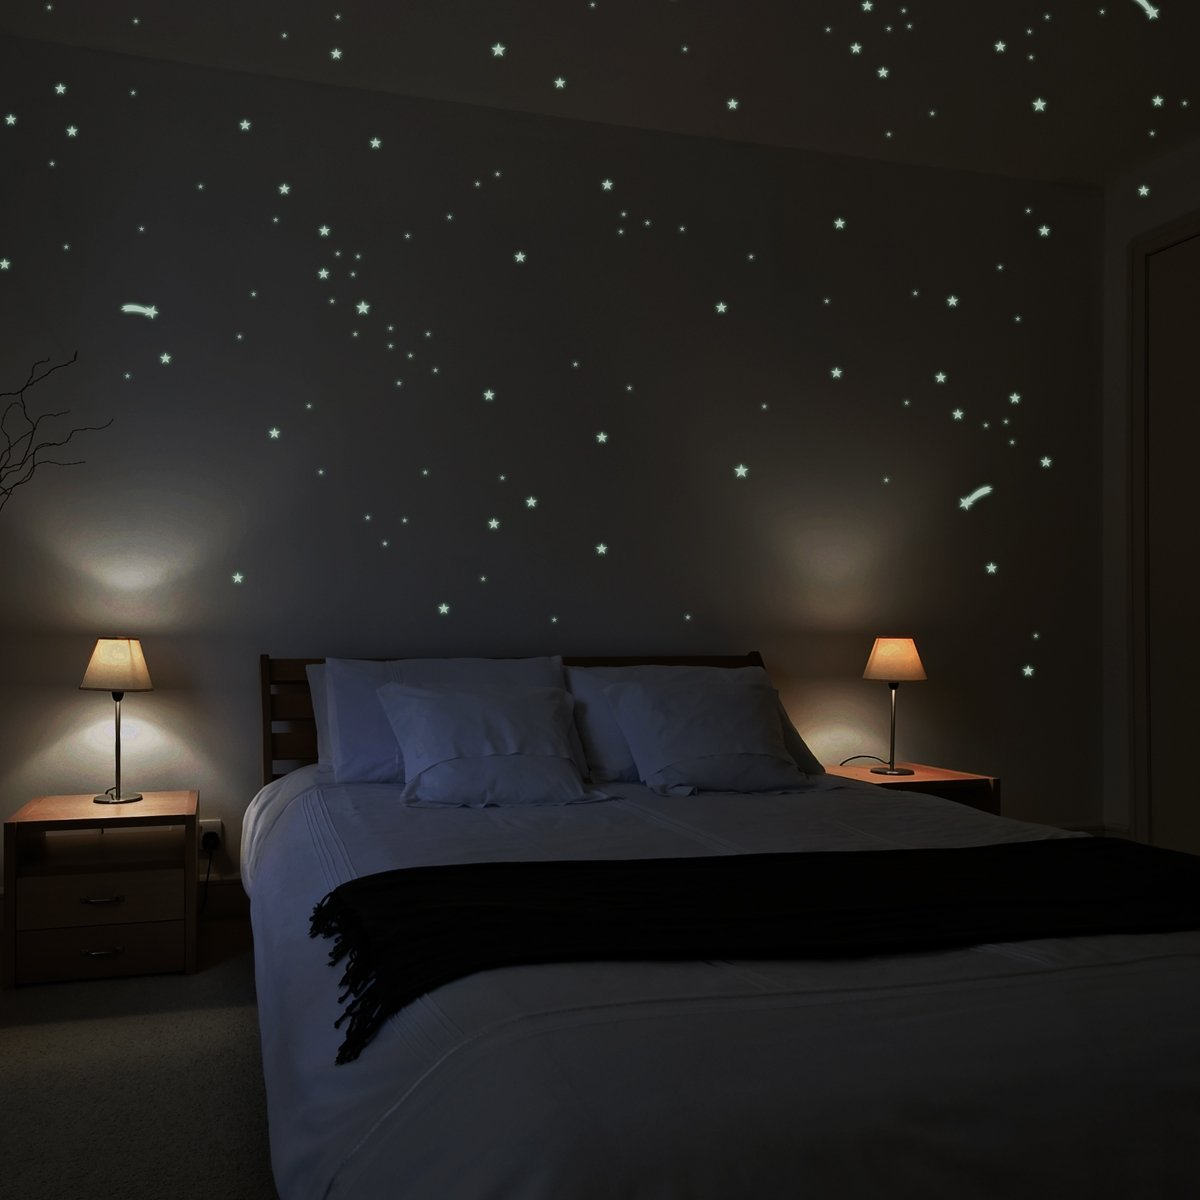 Romantic ideas glow in the dark i love you star - Stickers pour plafond ...